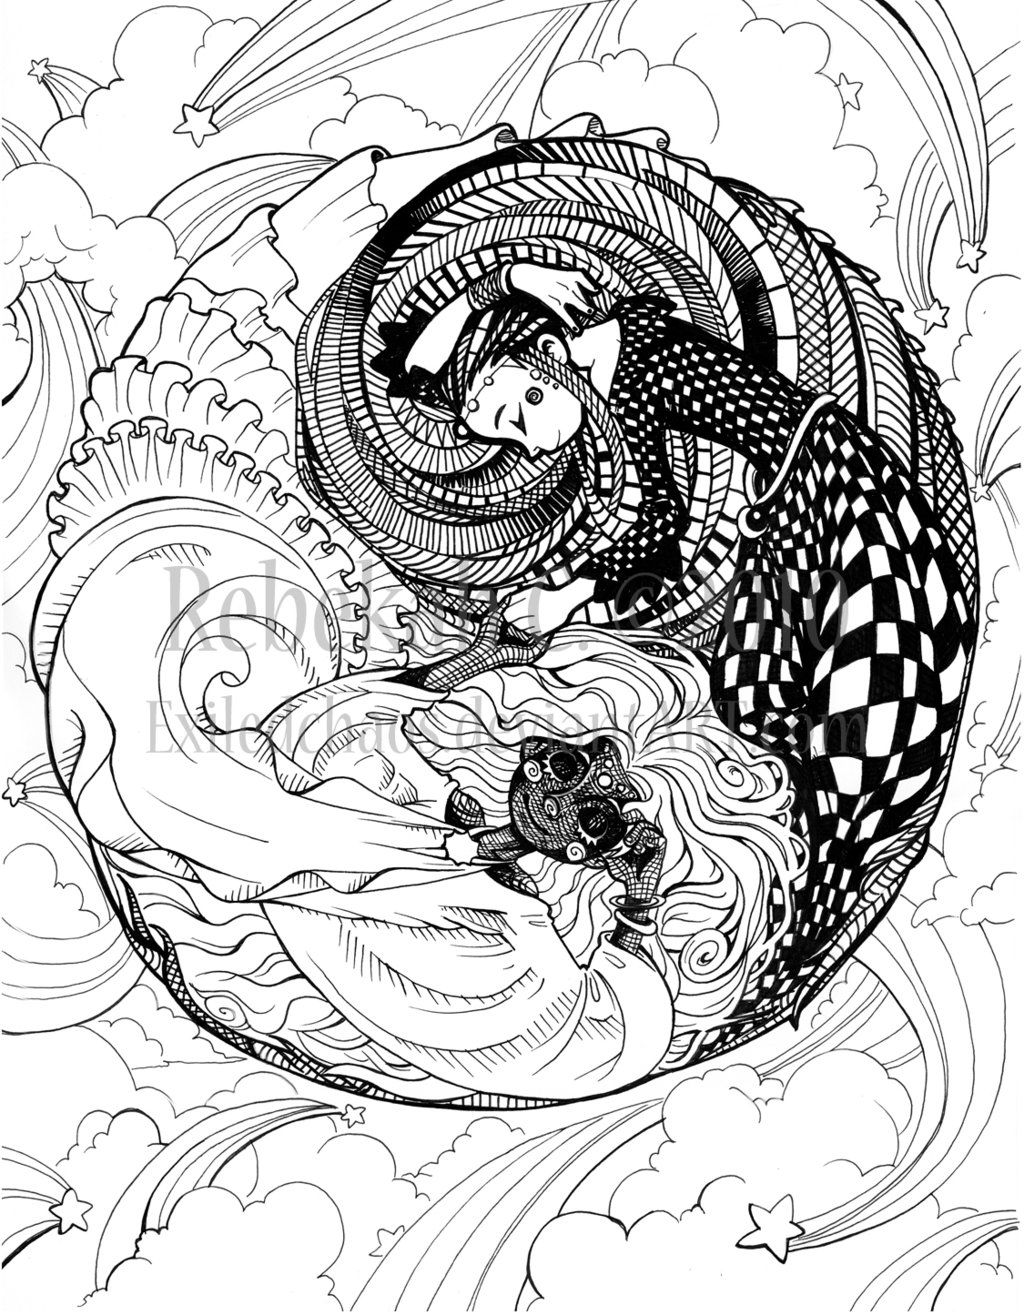 Herron Coloring Book Yin Yang Tattoo Design Coloring Pages